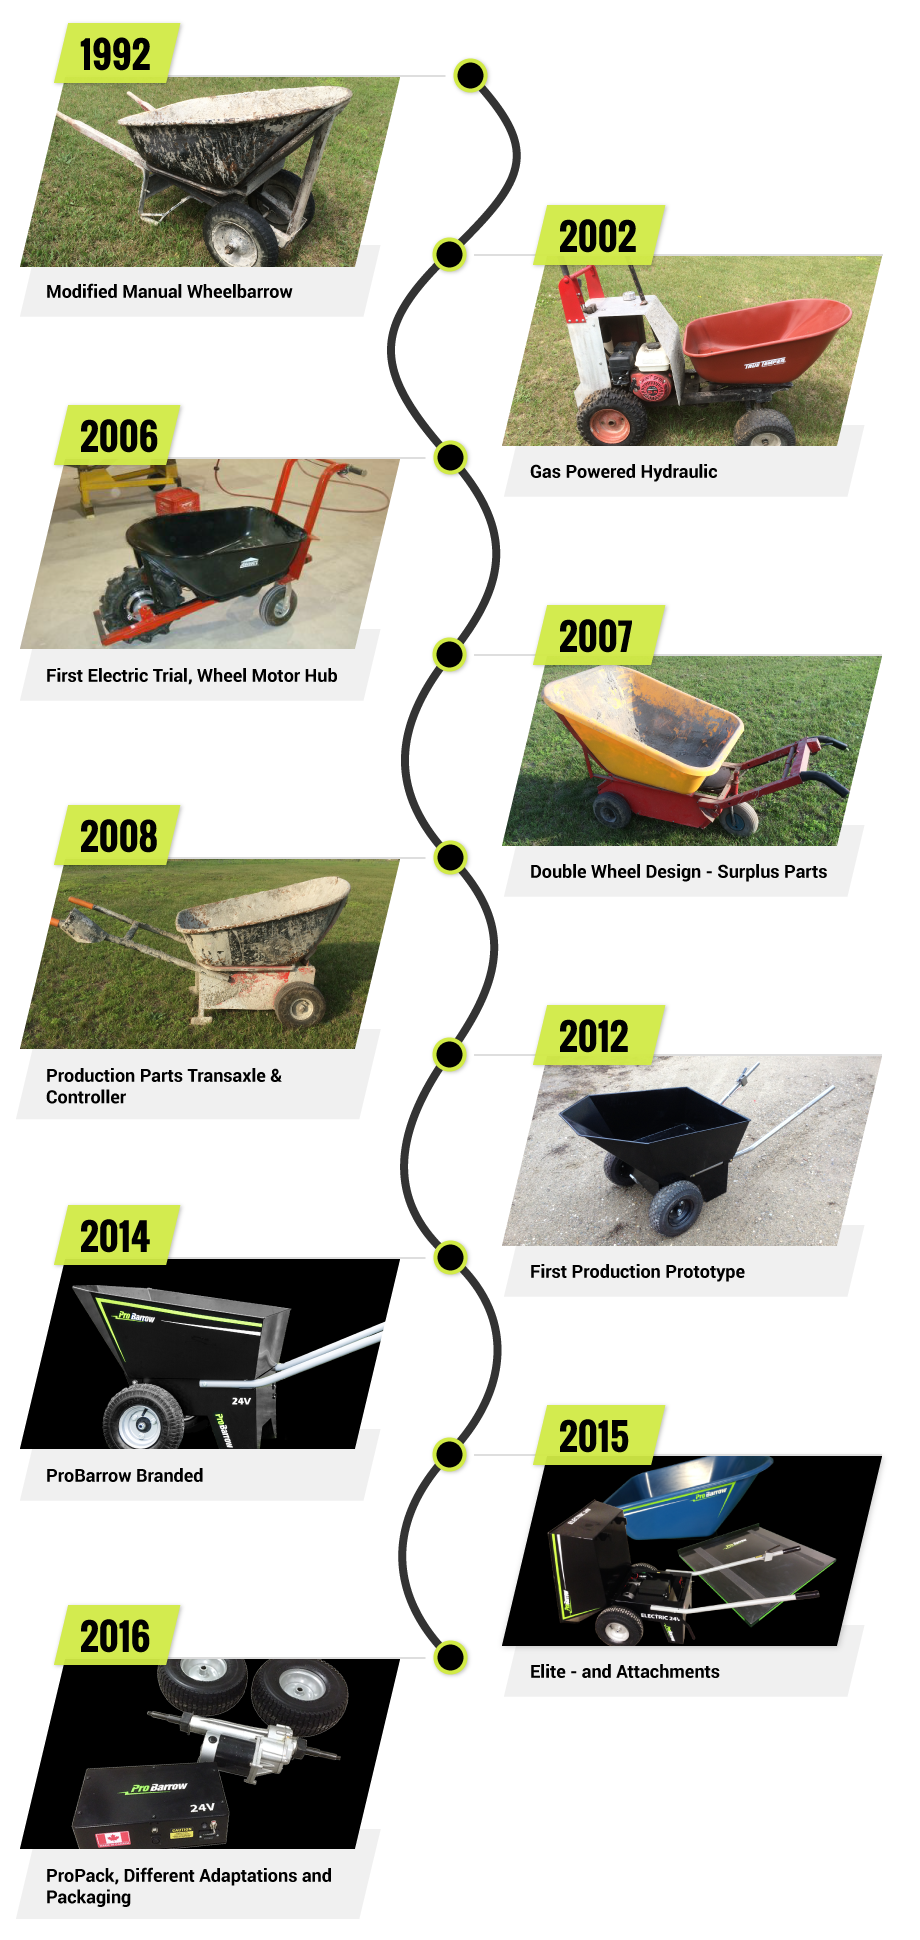 1992: Modified manual wheelbarrow, 2002: Gas powered hydraulic, 2006: First electric trial, wheel motor hub, 2007: Double wheel design - surplus parts, 2008: Production parts transaxle and controller, 2012: First production prototype, 2014: ProBarrow branded, 2015: Elite and attachments, 2016: ProPack, different adaptations and packaging.